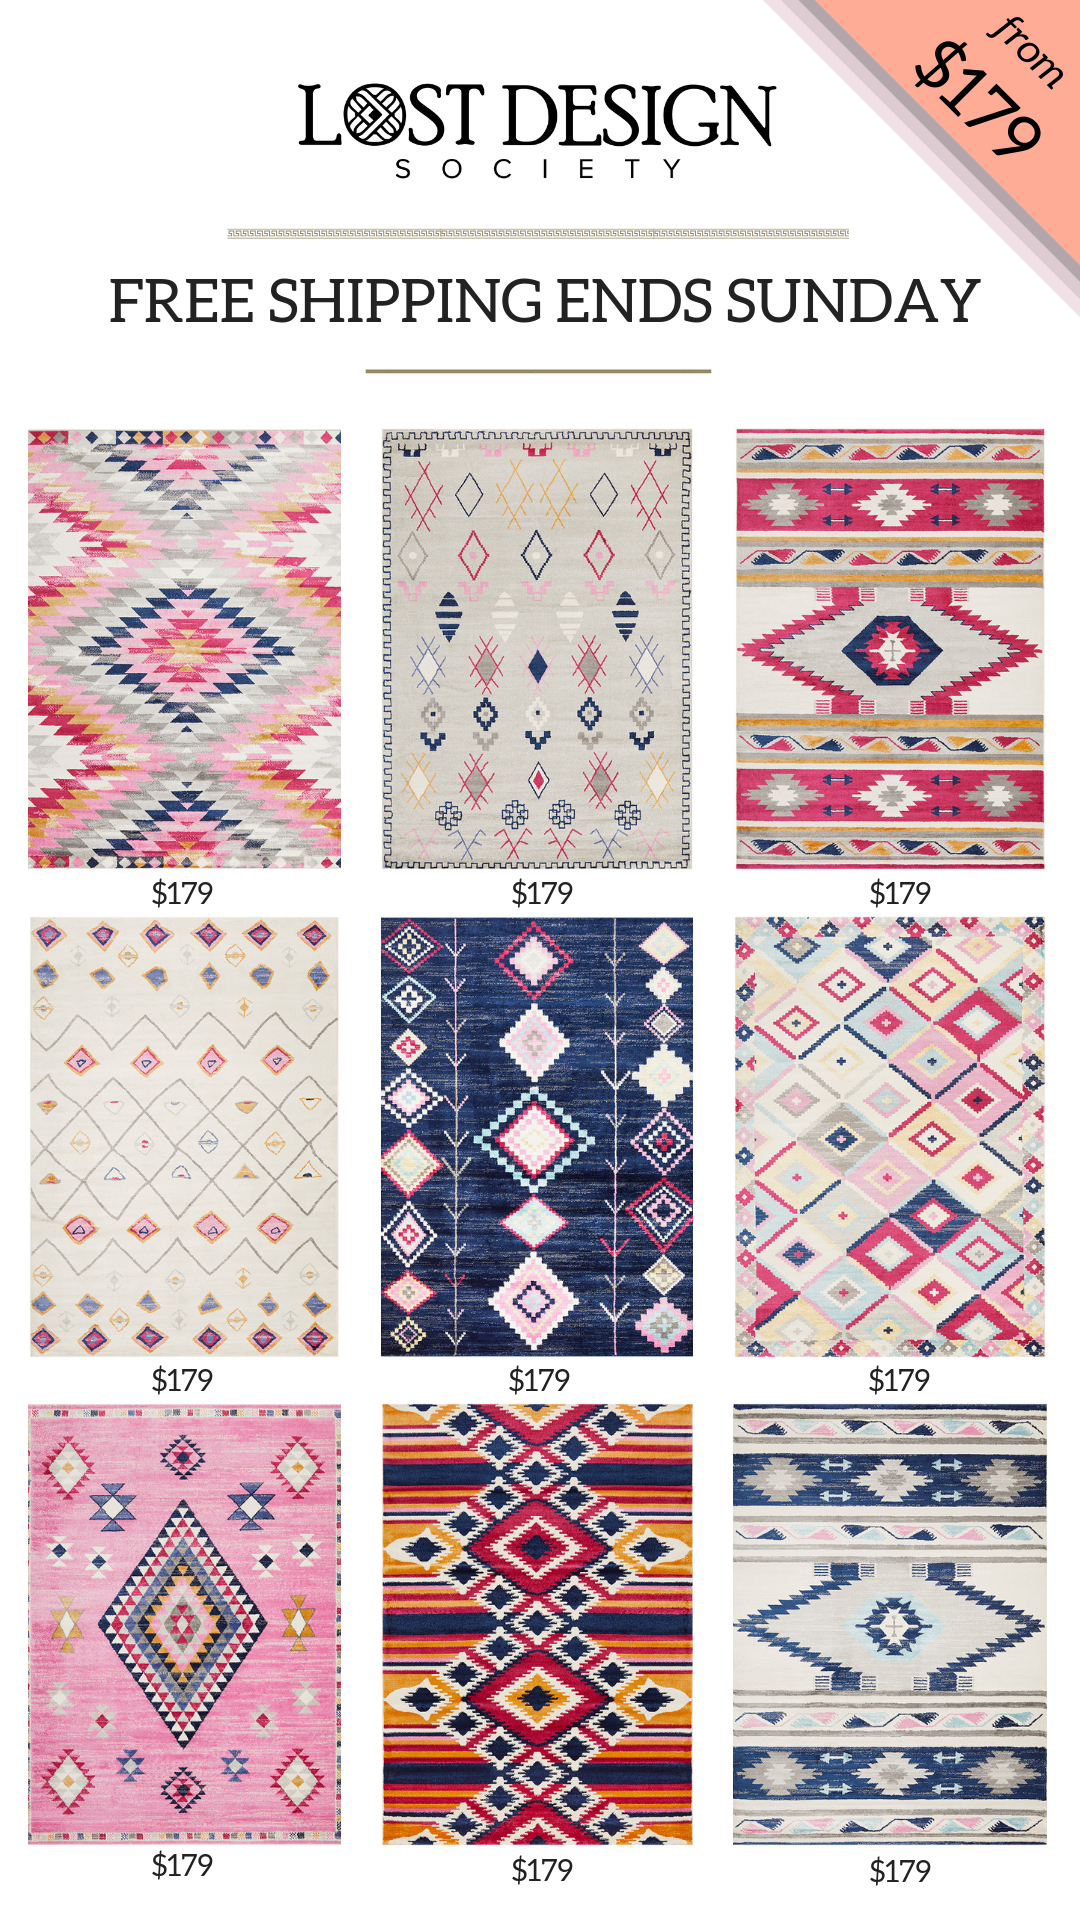 Rugs Free Shipping Ends Midnight Sunday 10th Feb Benefits